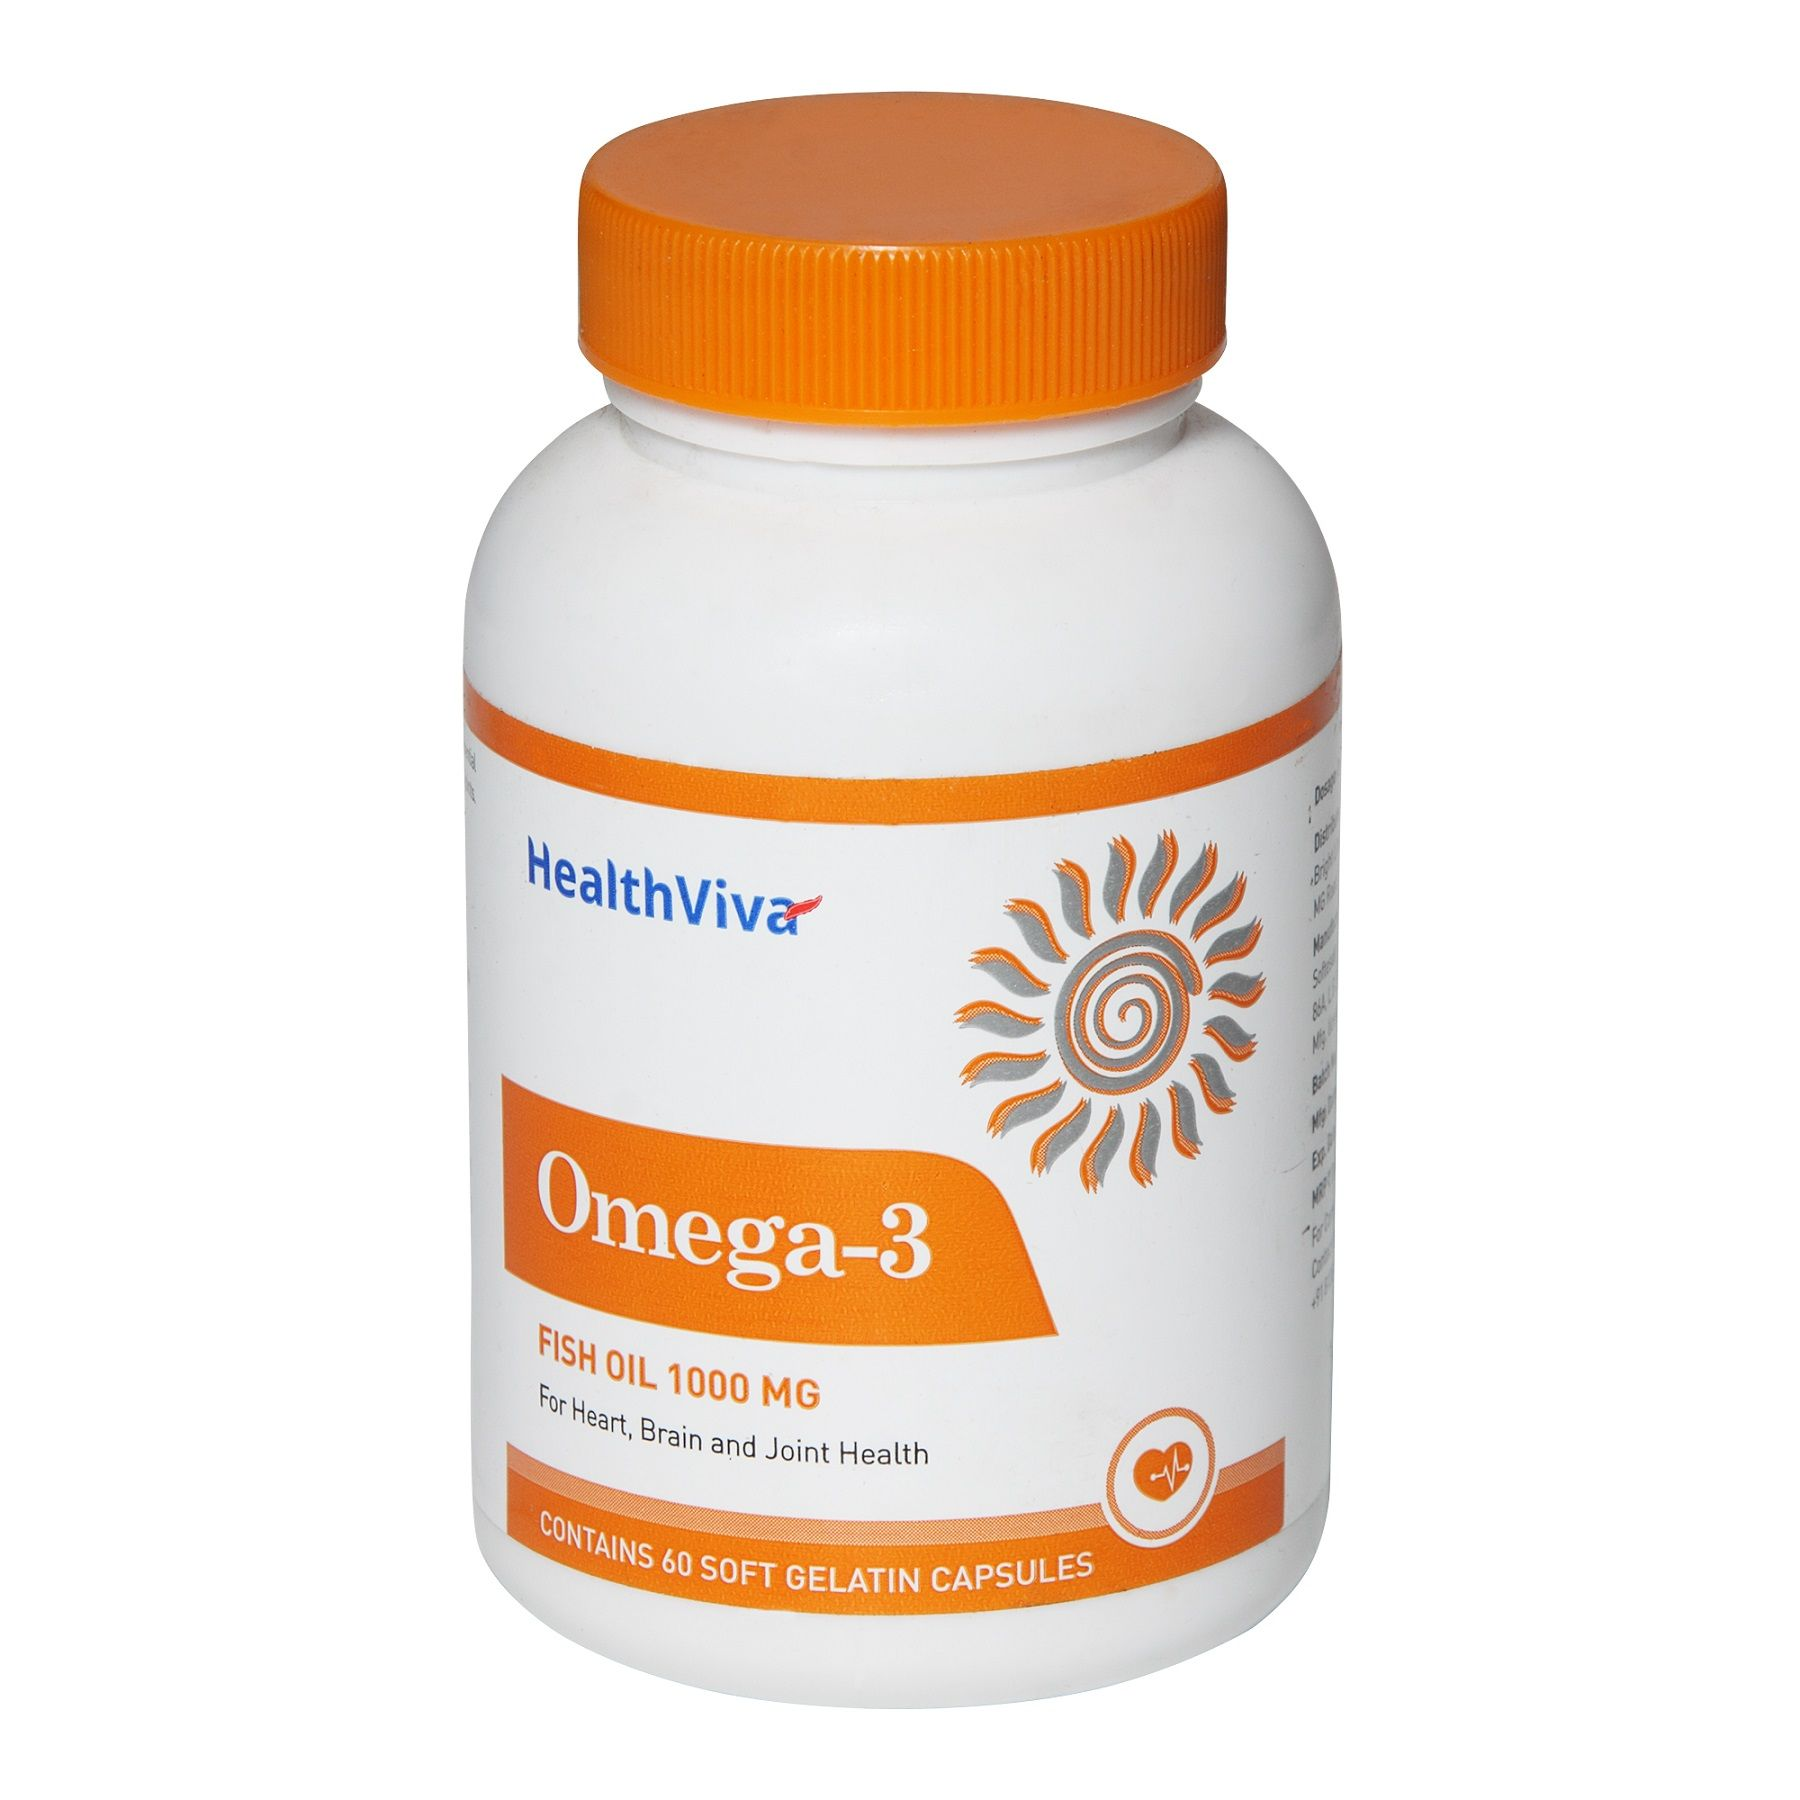 HealthViva Omega - 3 Supplement